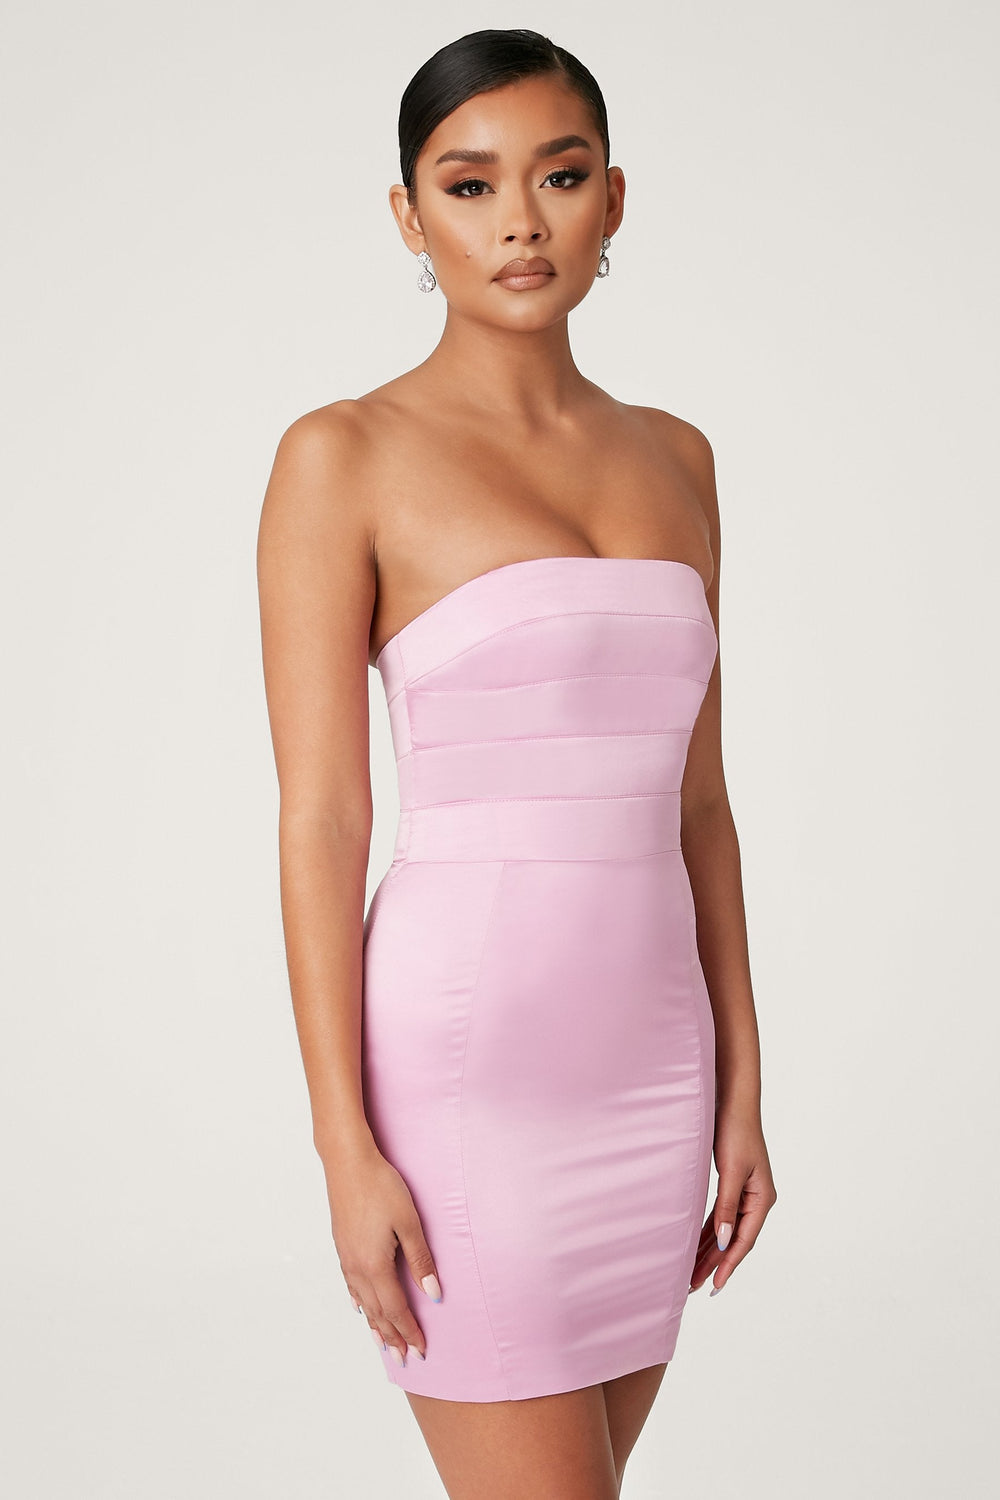 Alline Strapless Satin Mini Dress - Pink - MESHKI ?id=13873079320651